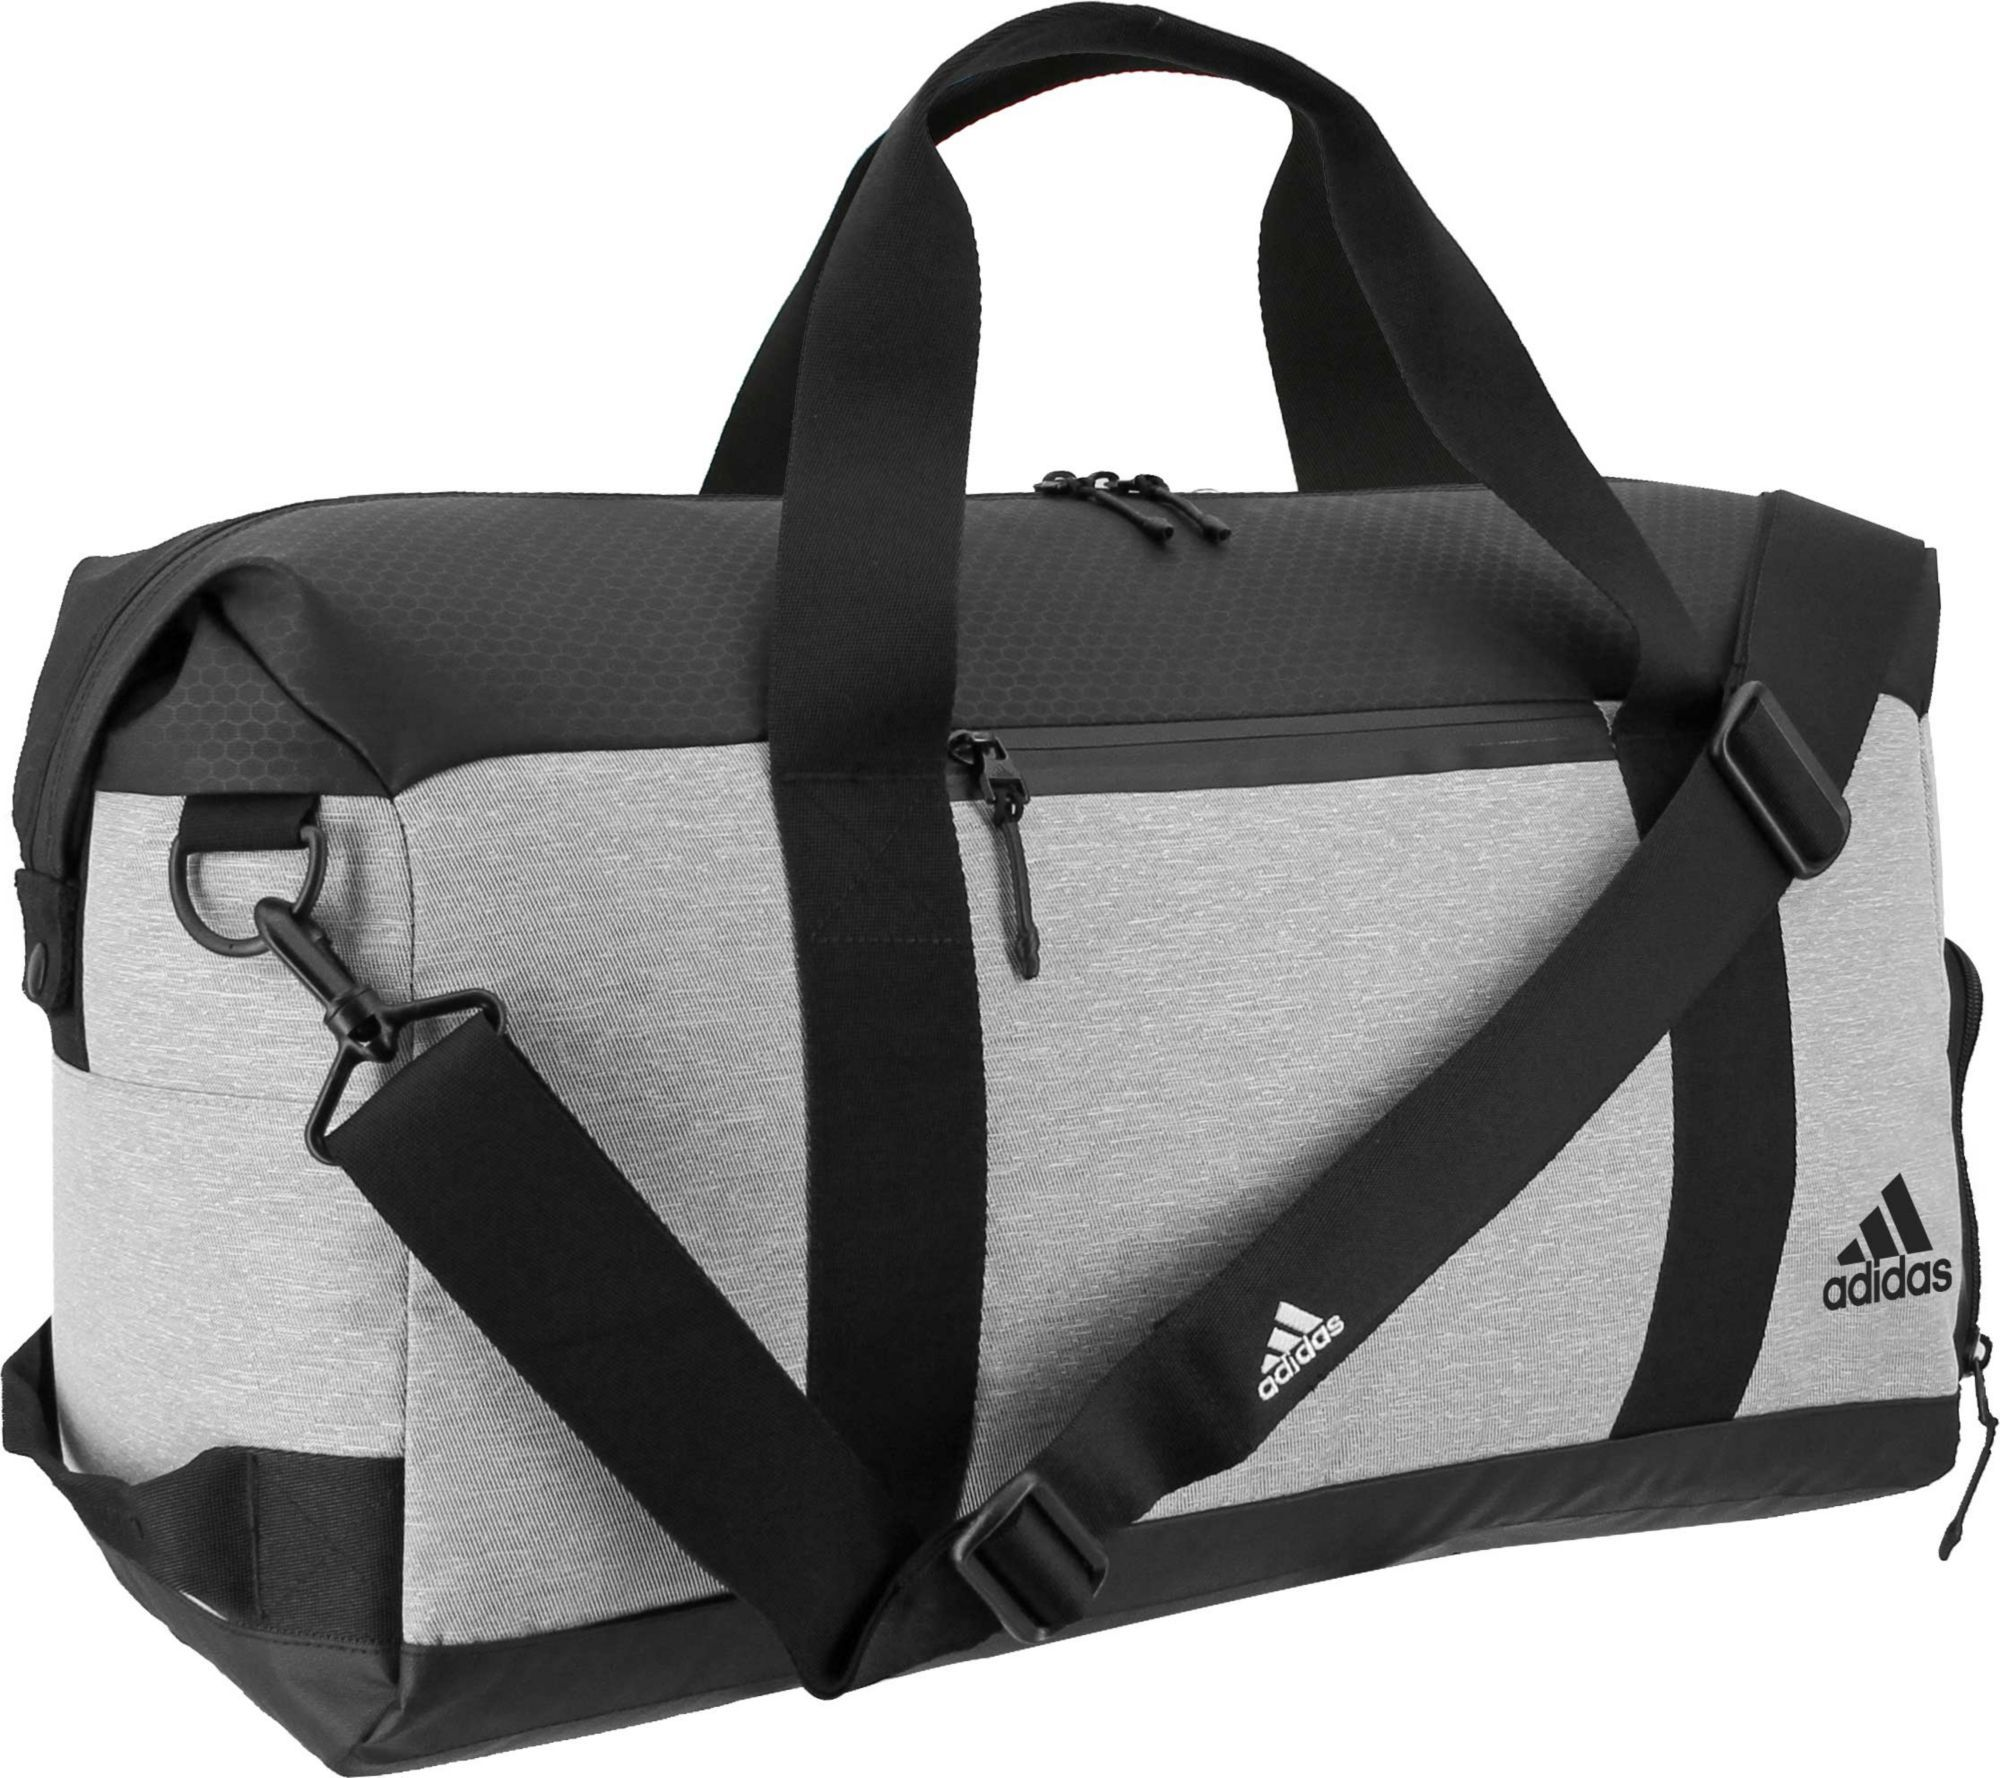 db5240661a7c adidas Sport ID Duffle Bag in 2019